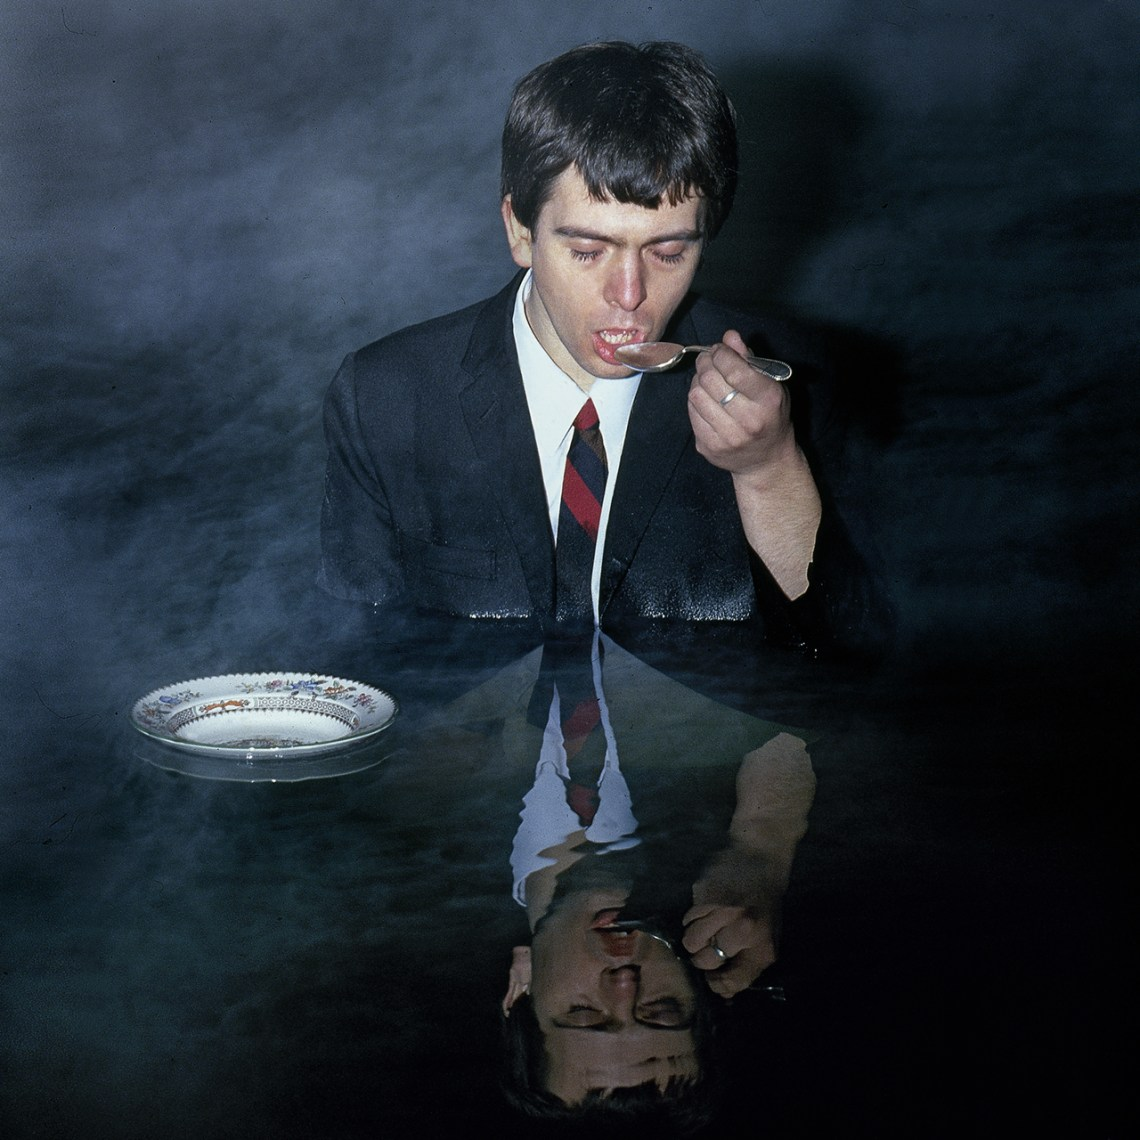 Peter-Gabriel-Soup.Bath.Arrowsmith.208.jpg